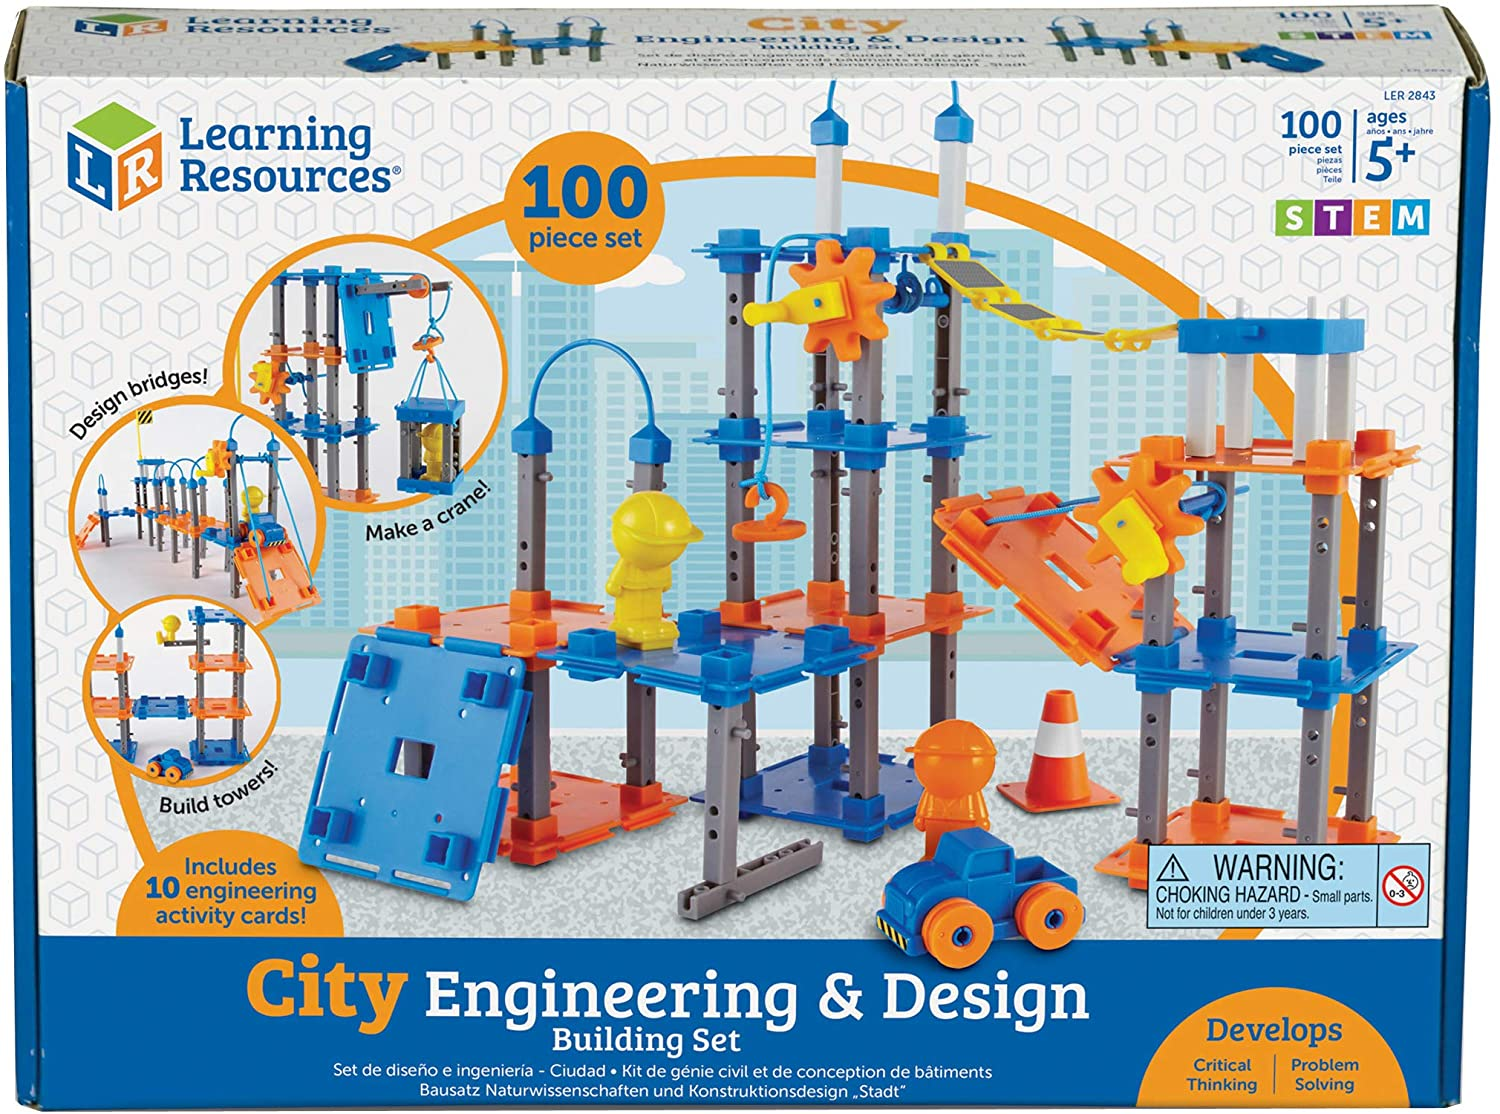 City Engineering and Design Building Set